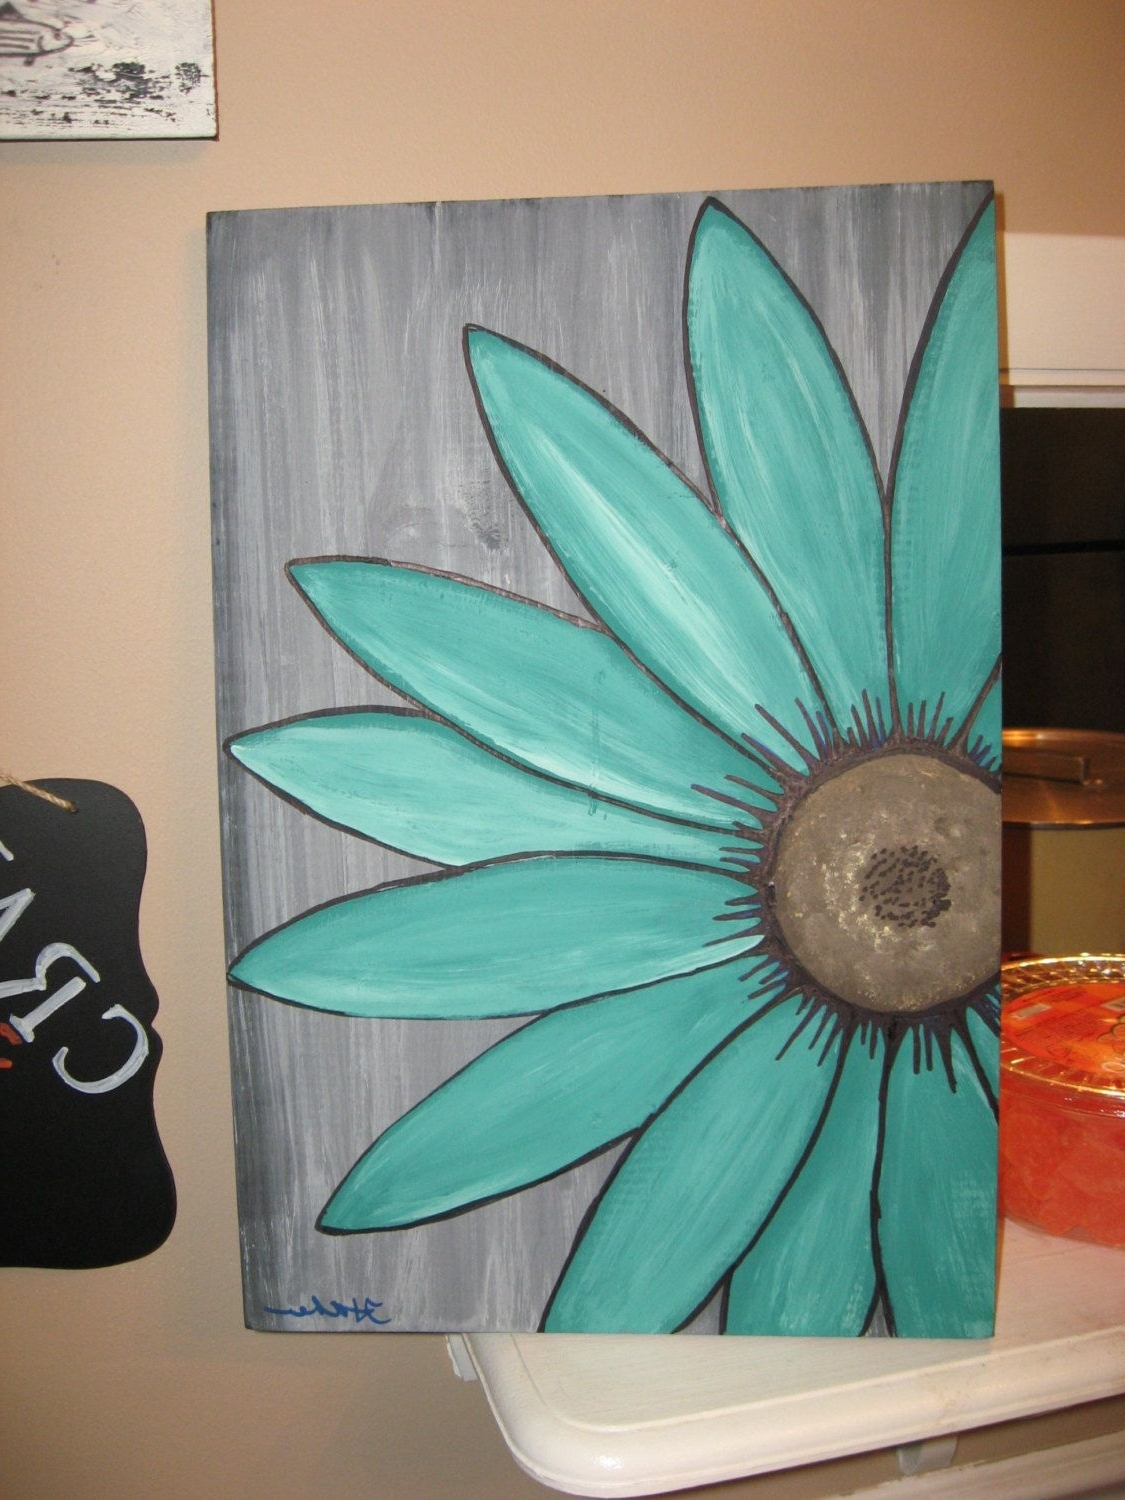 Turquoise Wall Art In Widely Used Turquoise Flower Daisy Painting Rustic Flower Wood Flower Wall Art (View 18 of 20)